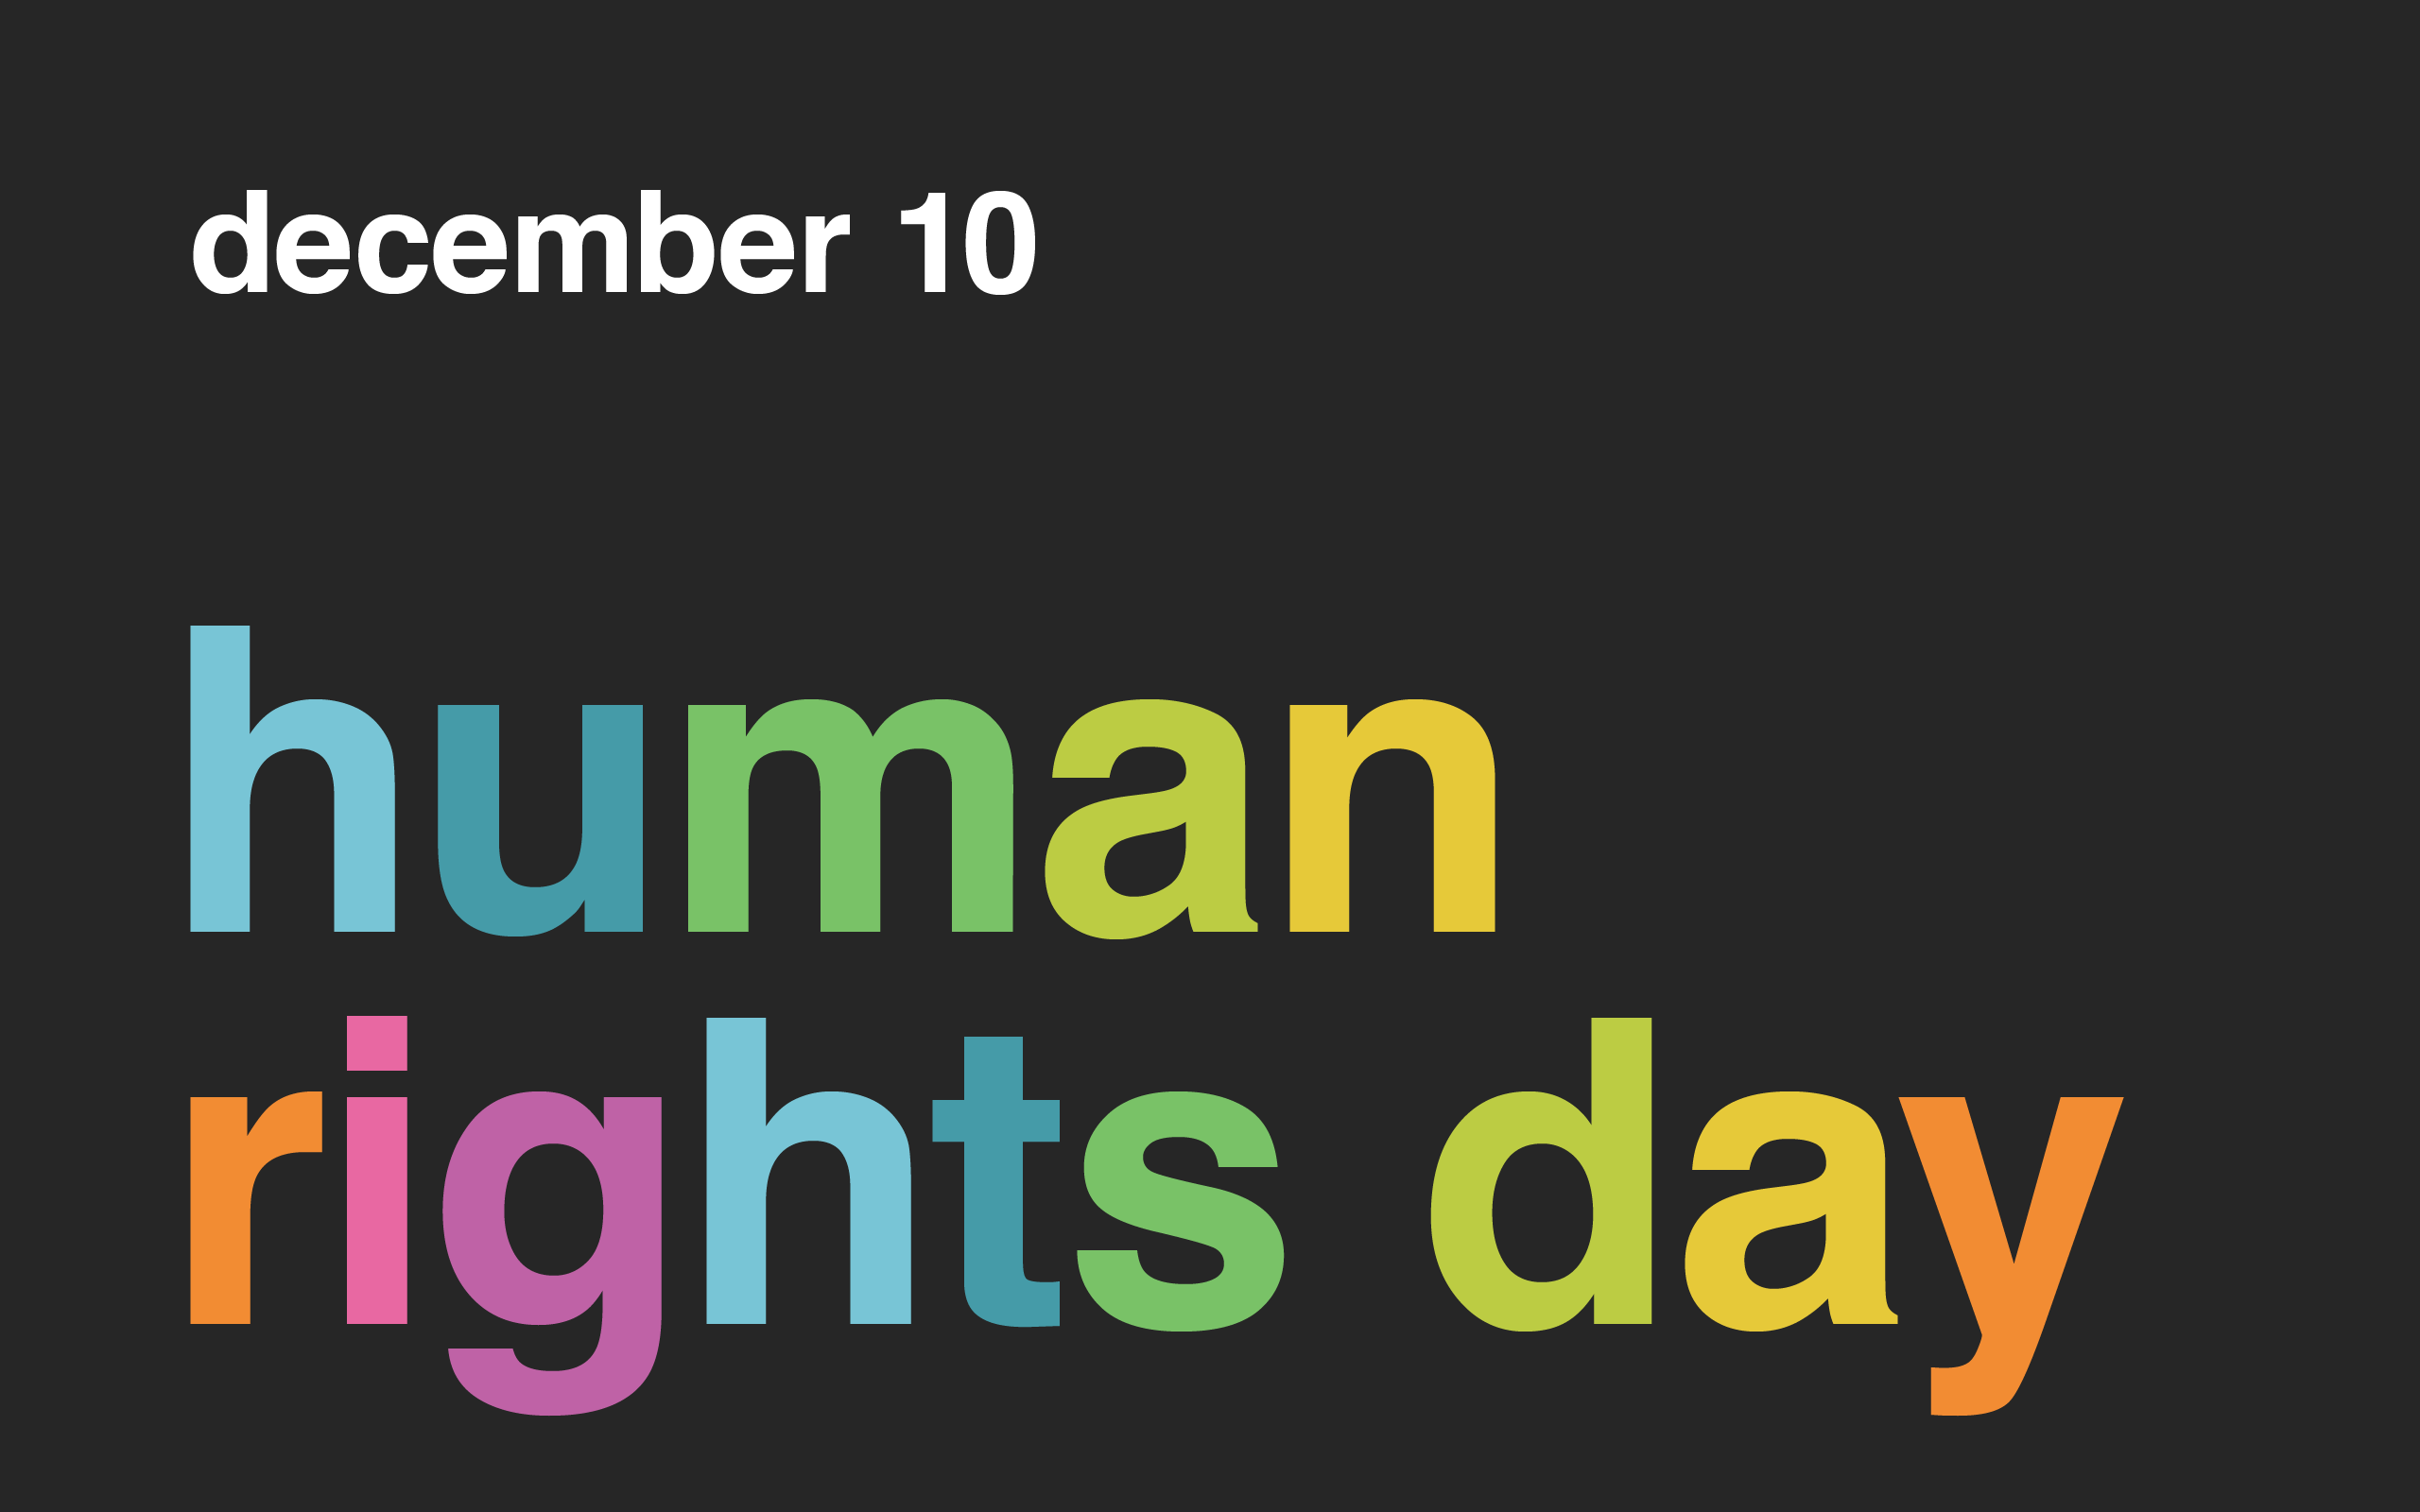 30 Human Rights Day Wish Pictures And Photos 2560x1600